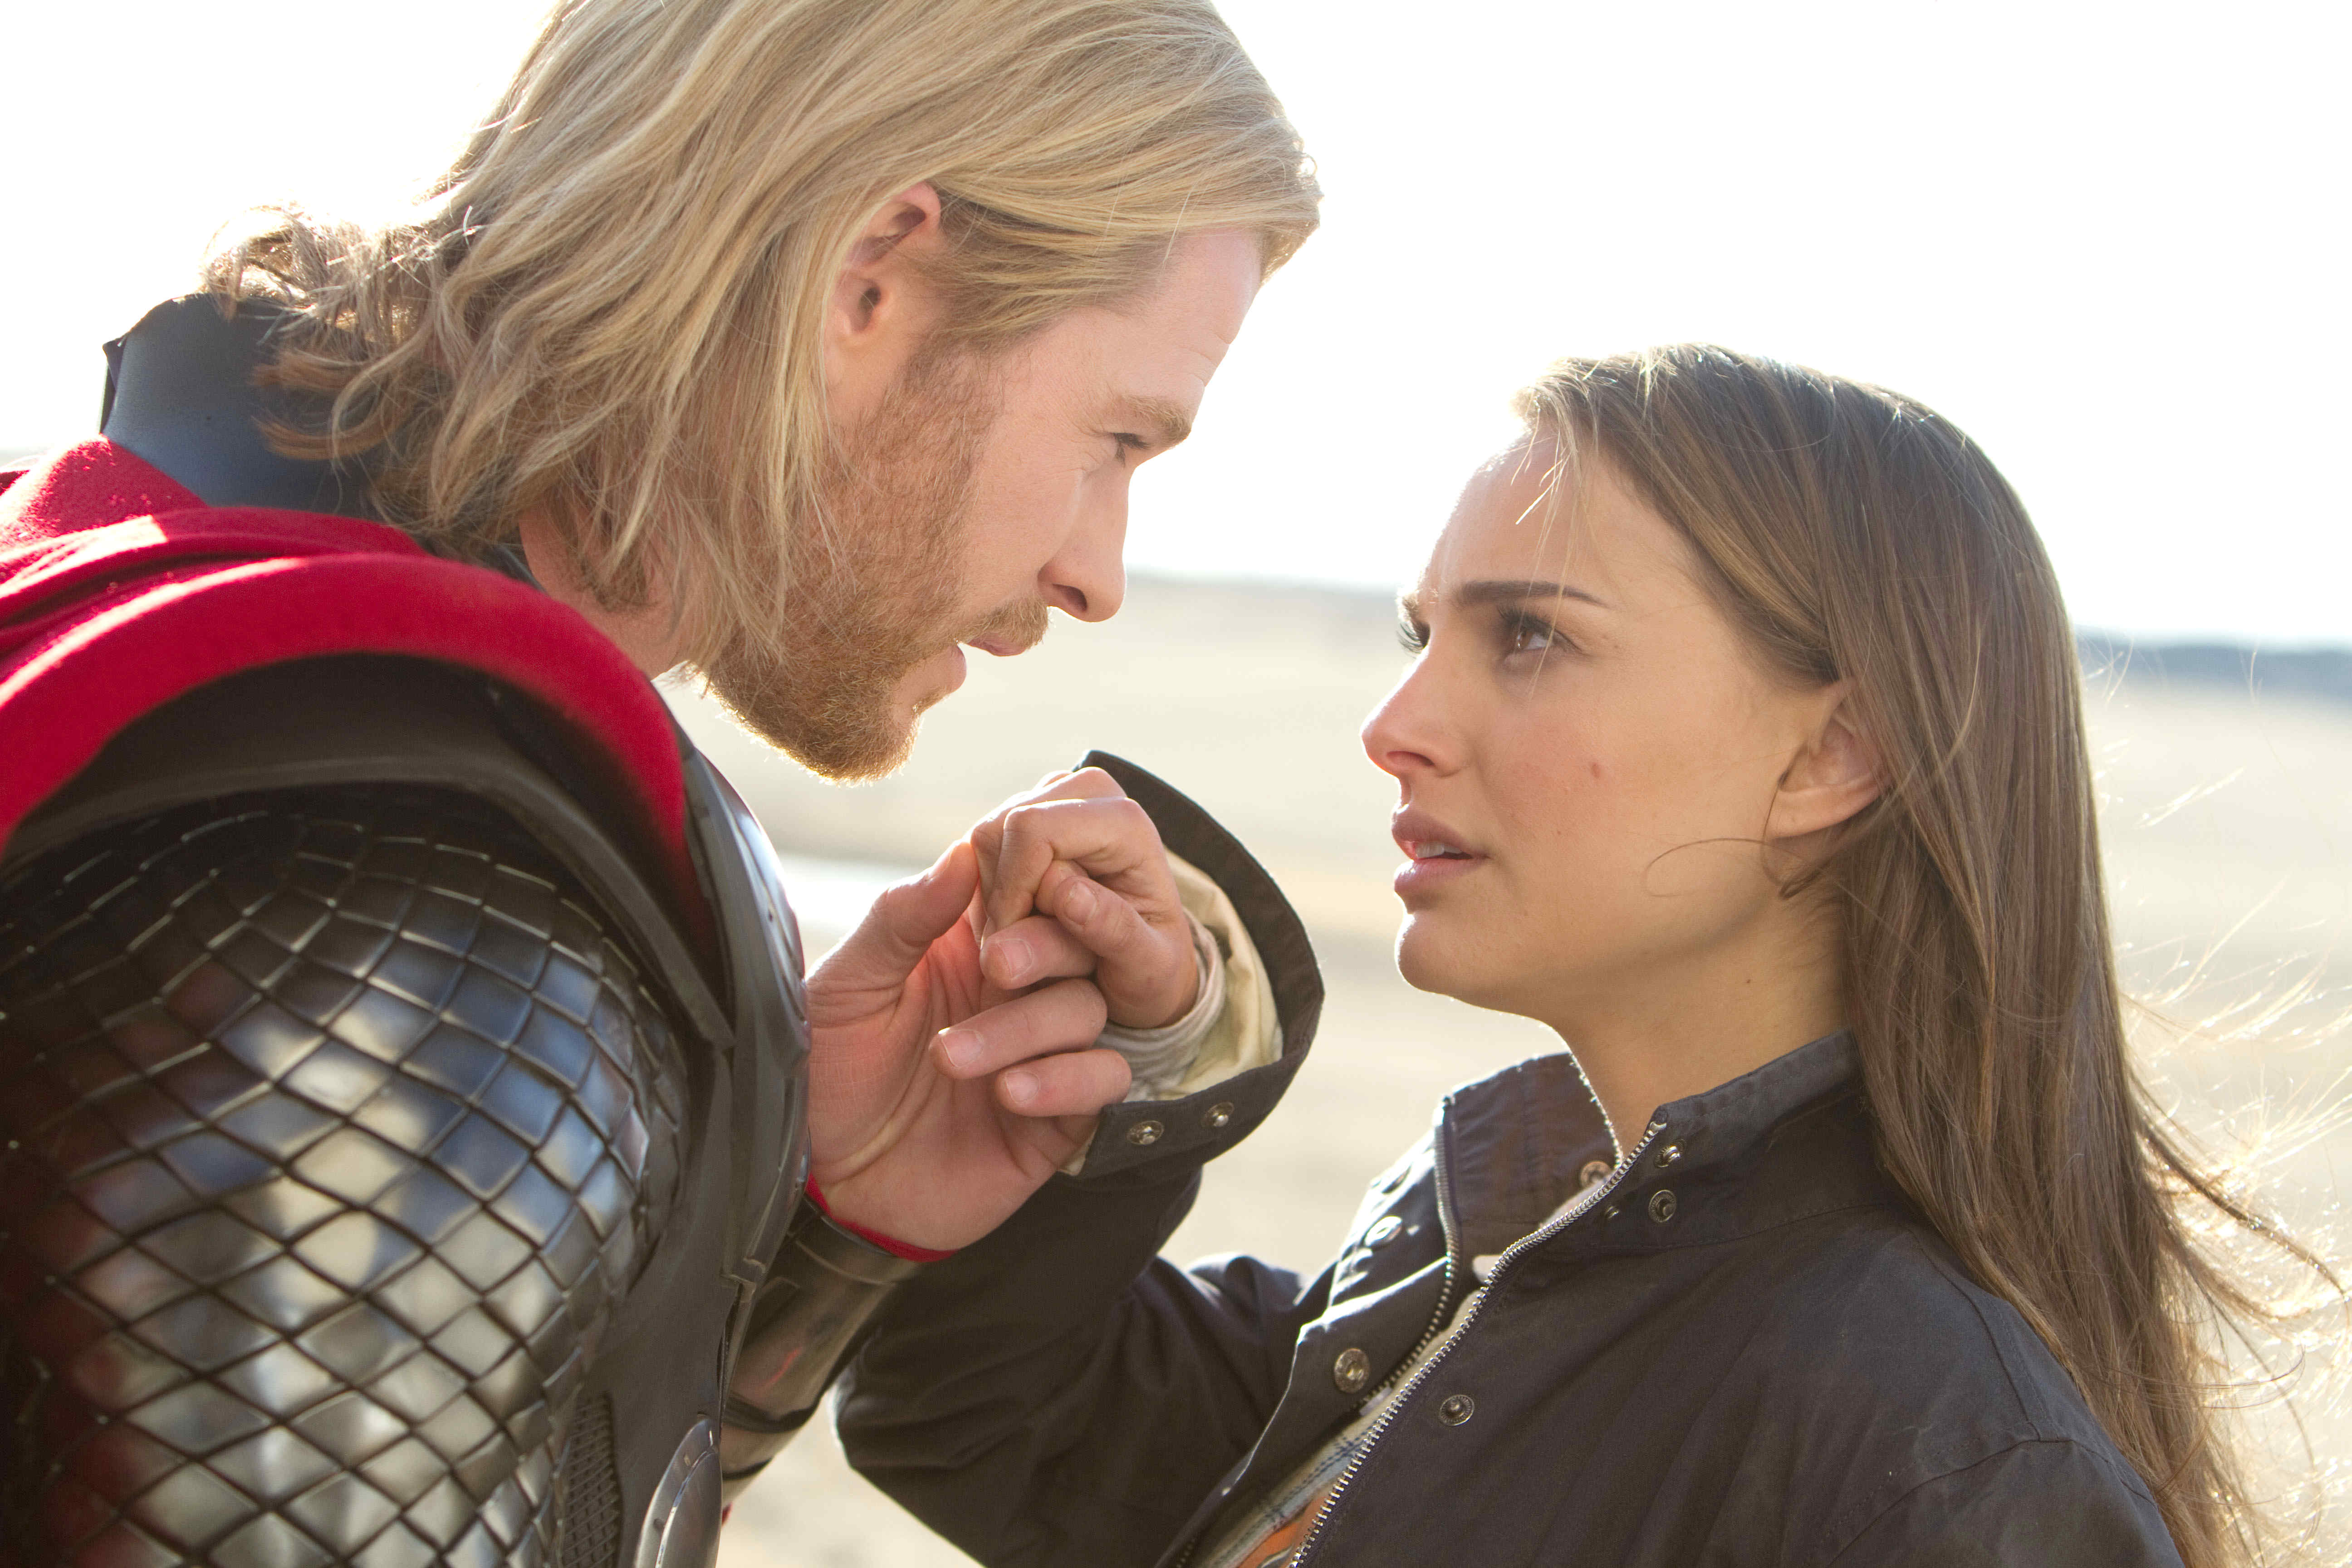 Thor (Chris Hemsworth) and Jane Foster (Natalie Portman) in Thor (2011)